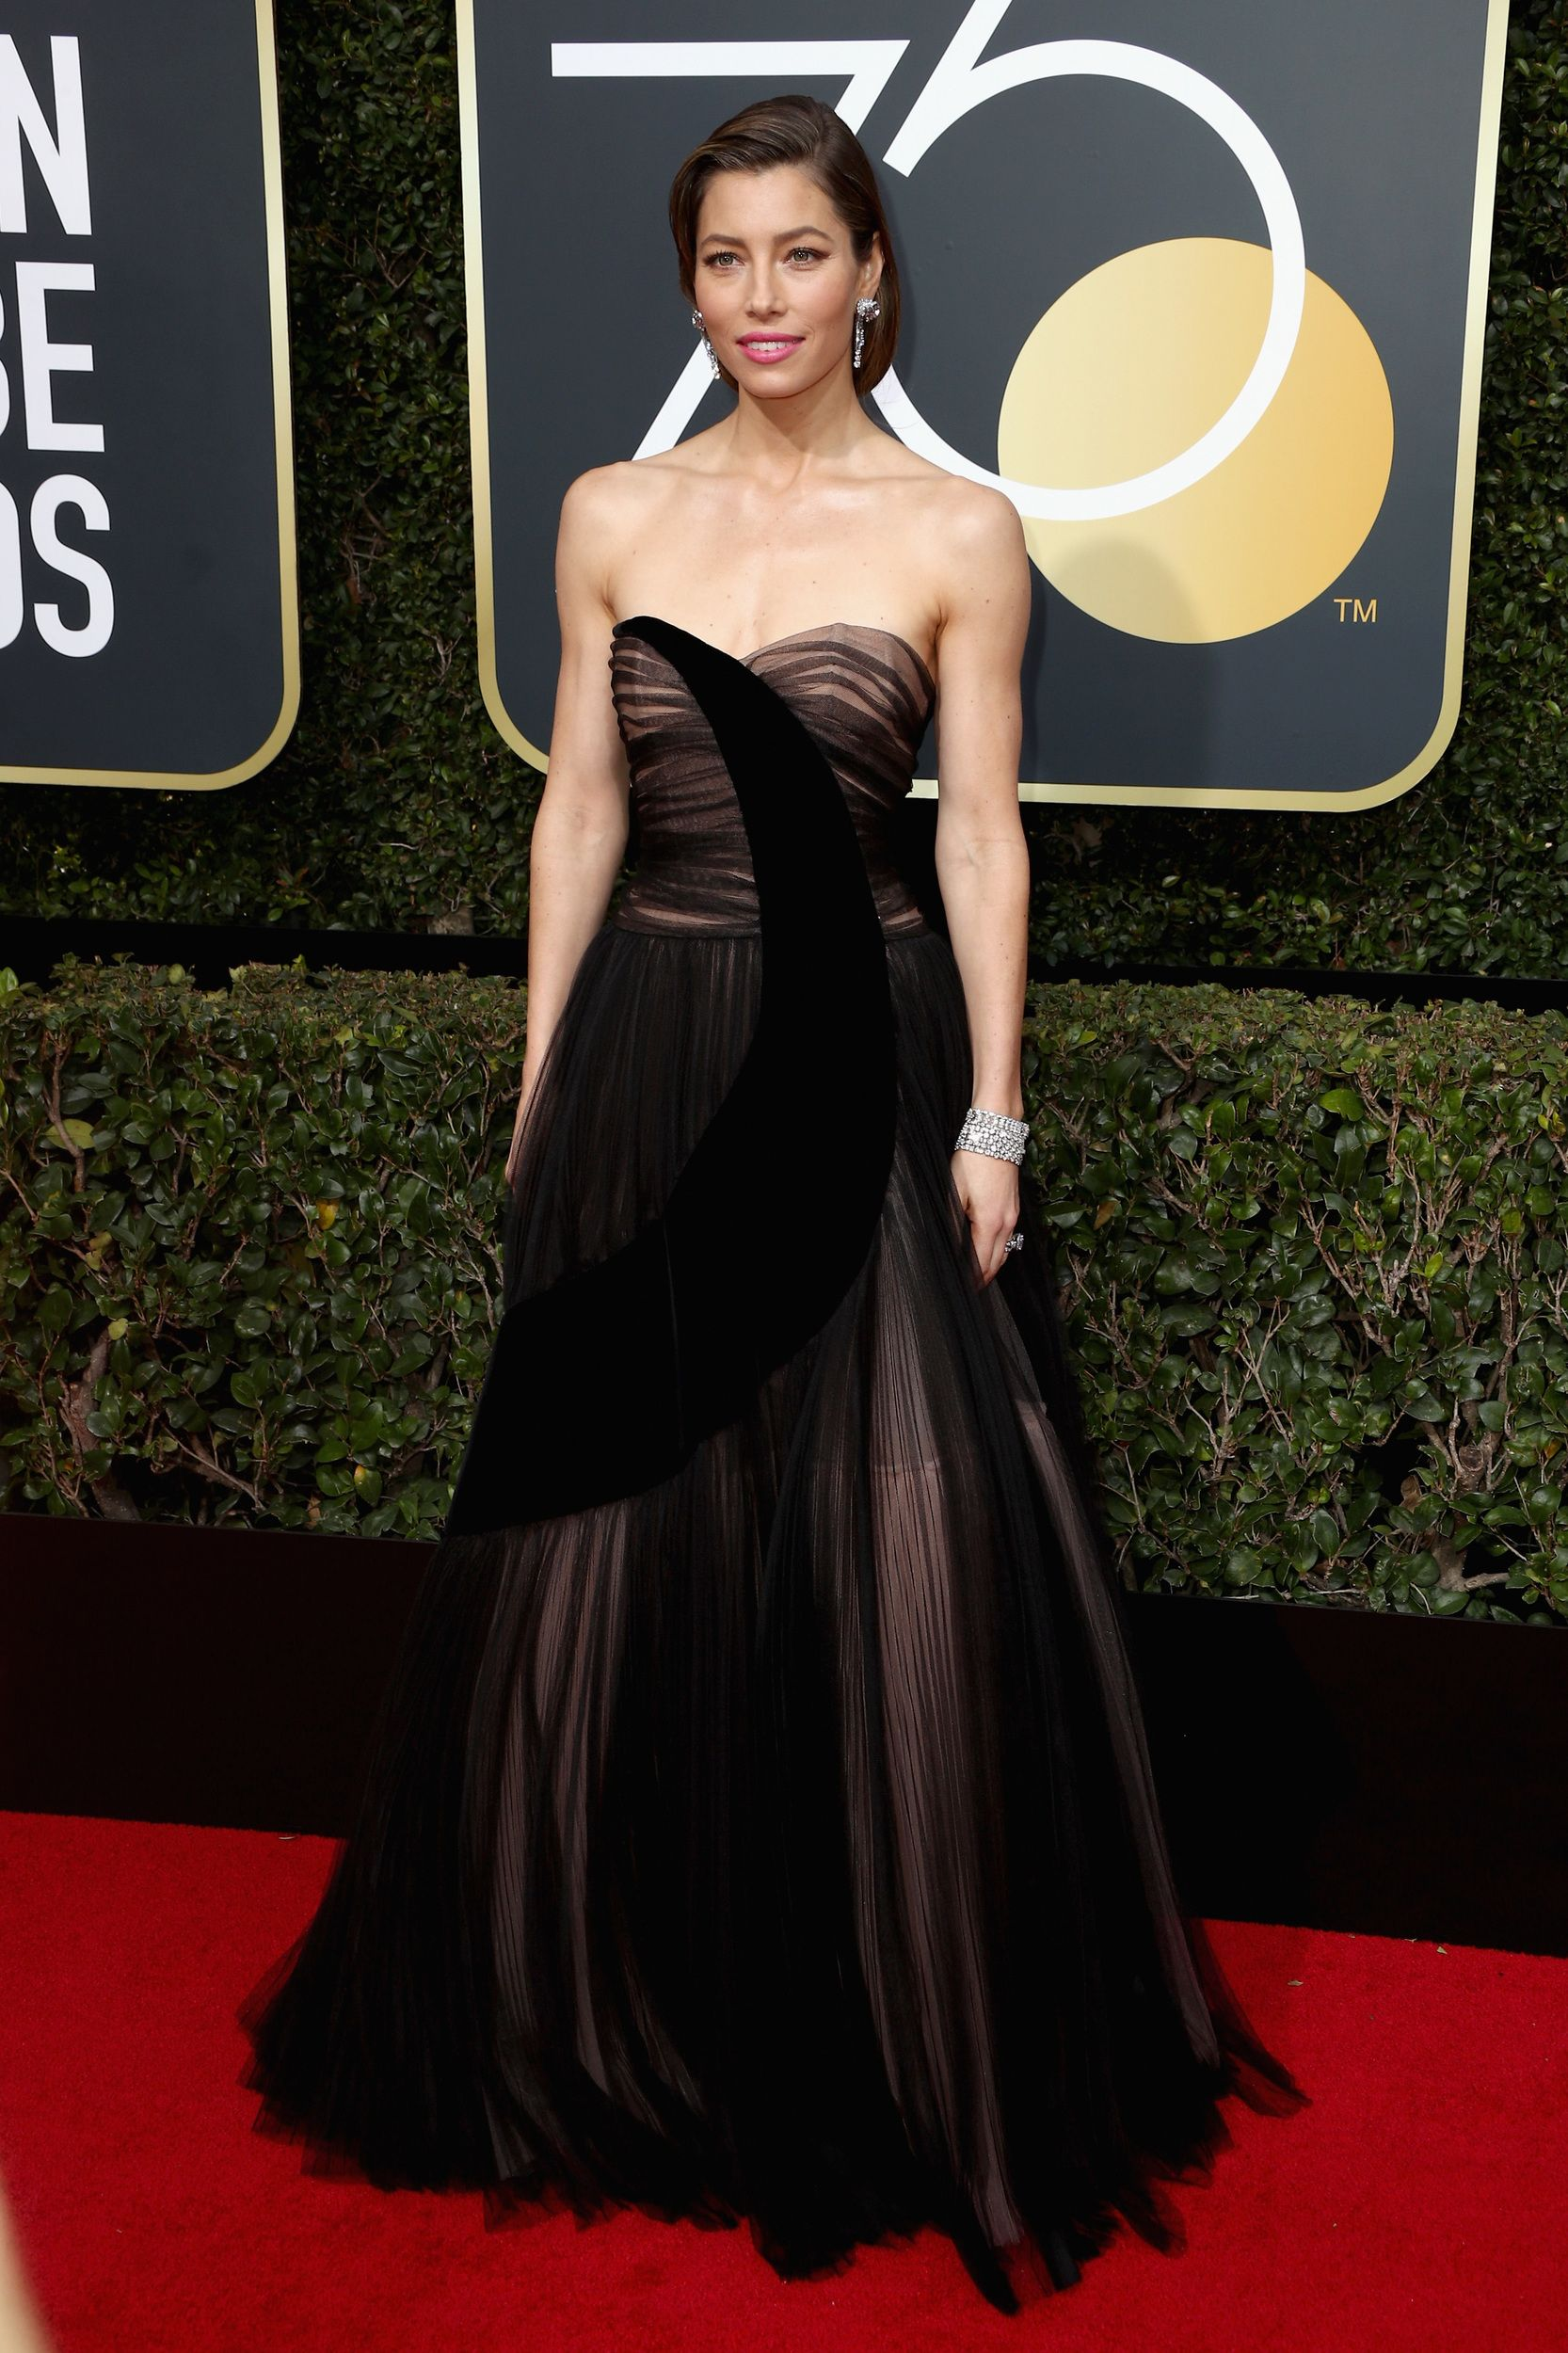 Here Are All Of The Red Carpet Looks From The 2018 Golden Globes Golden Globes Dresses Red Carpet Fashion Golden Globes Red Carpet